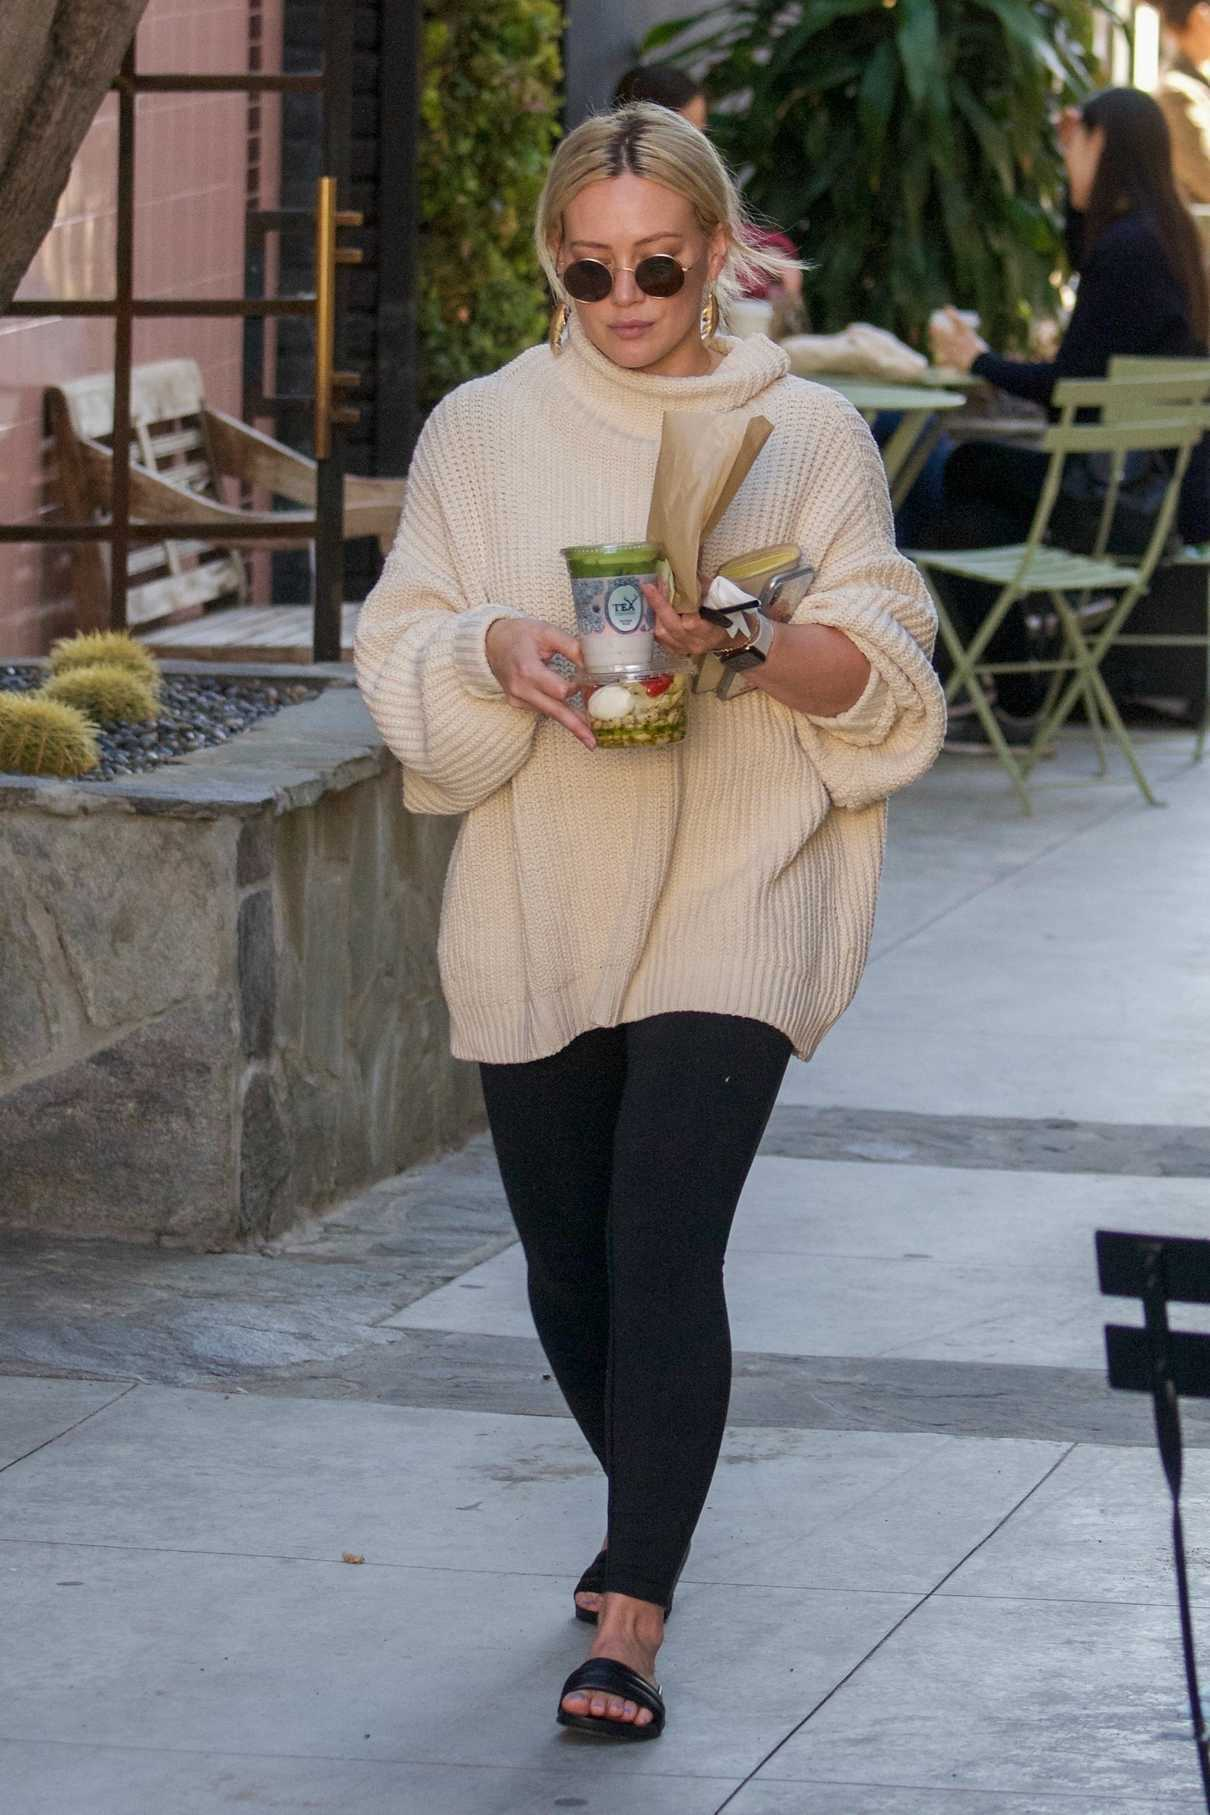 Hilary Duff in a White Oversized Sweater